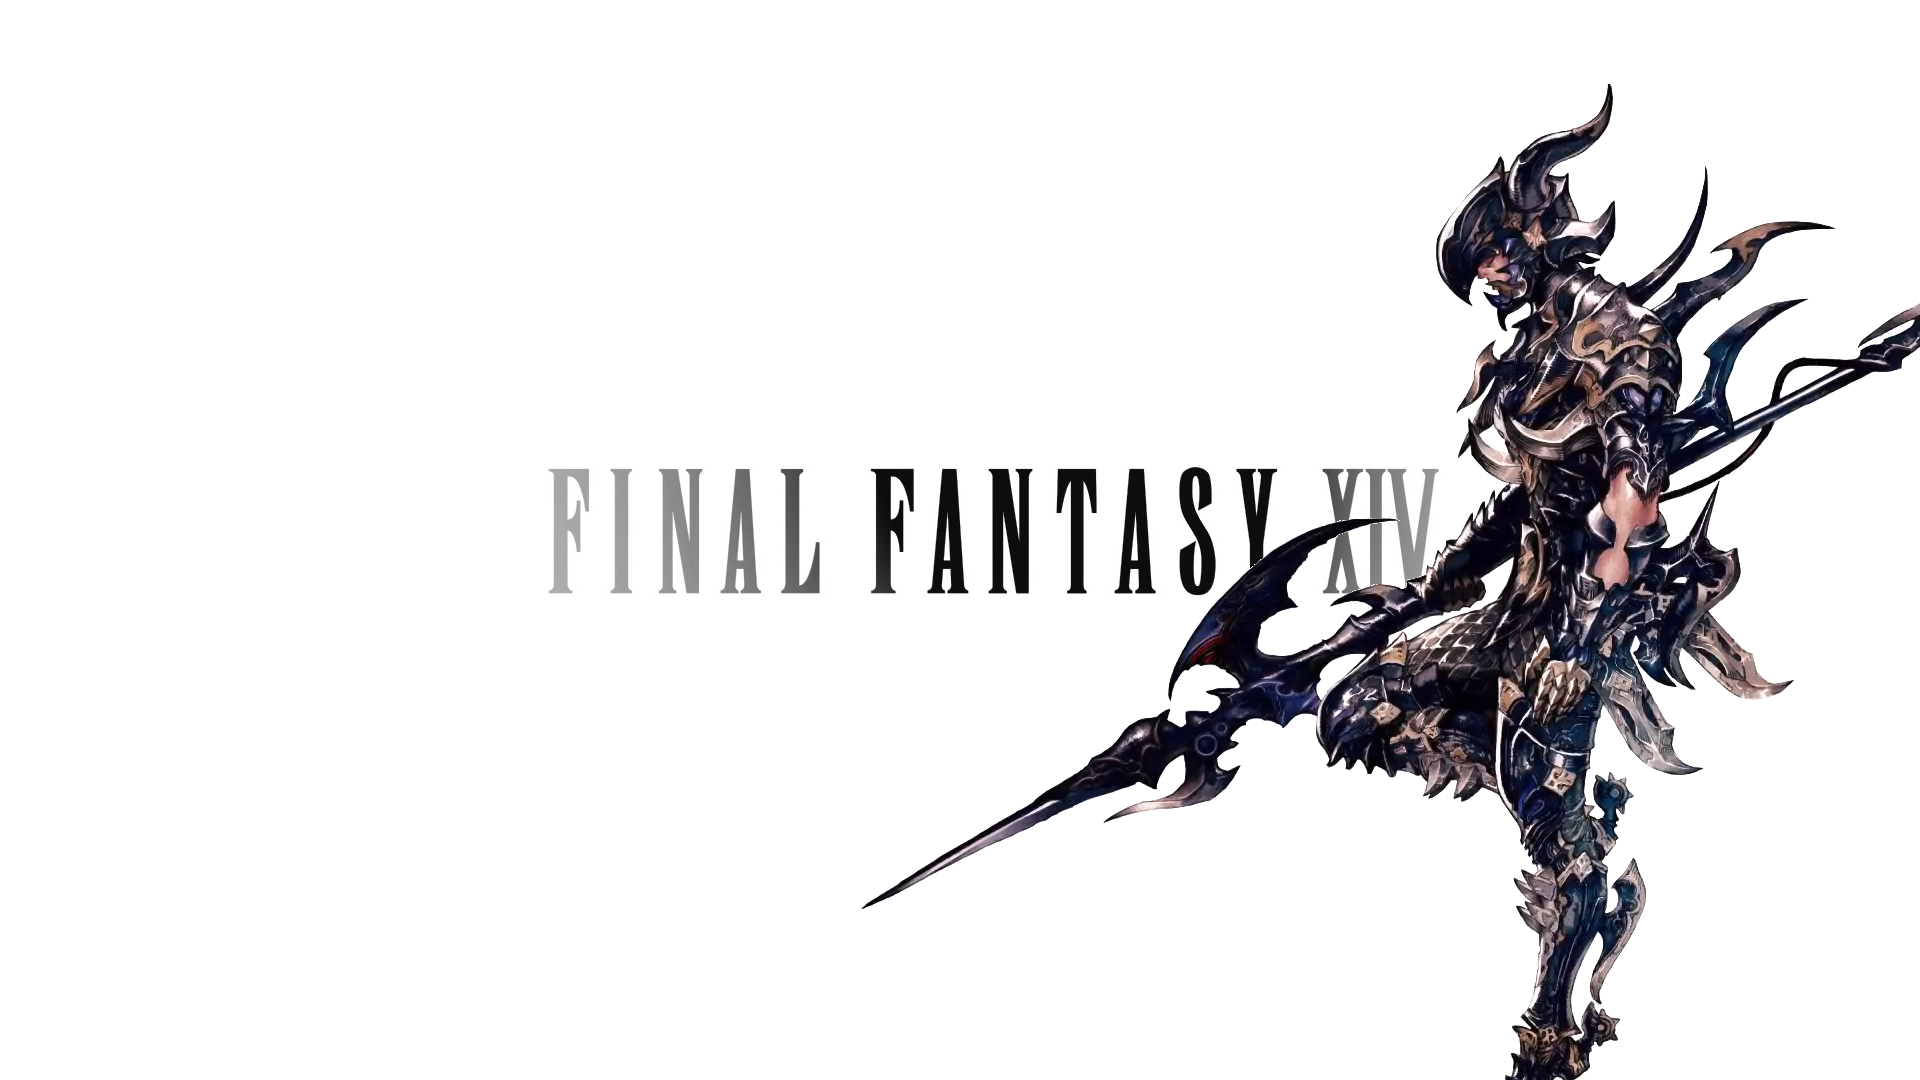 Final fantasy xiv wallpapers pictures images final fantasy xiv full hd wallpaper voltagebd Image collections